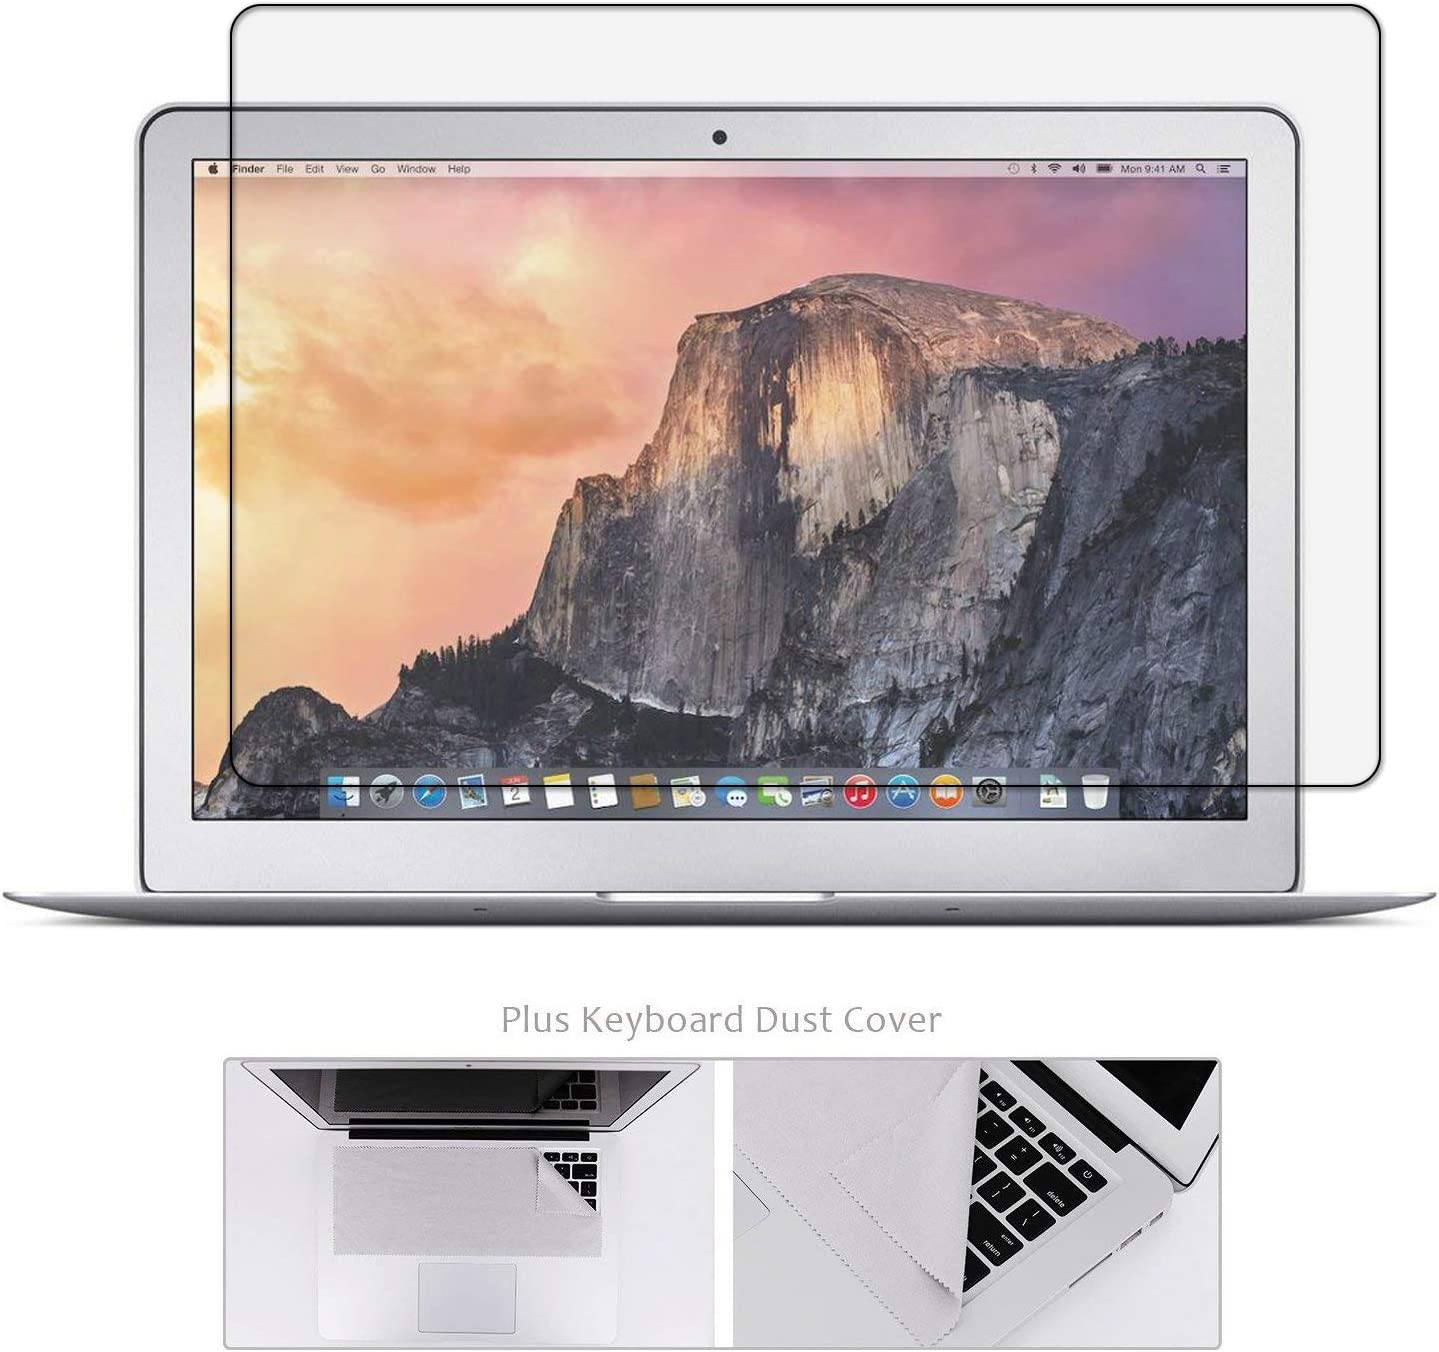 Tempered Glass Screen Protector Compatible with MacBook Air 13 Inch Model A1369 A1466 + Large Cleaning Cloth, Bubble Free, 99.9% Transparency Not Reduce The Screen Brightness (Not for Newest Mac Air 13 A1932)